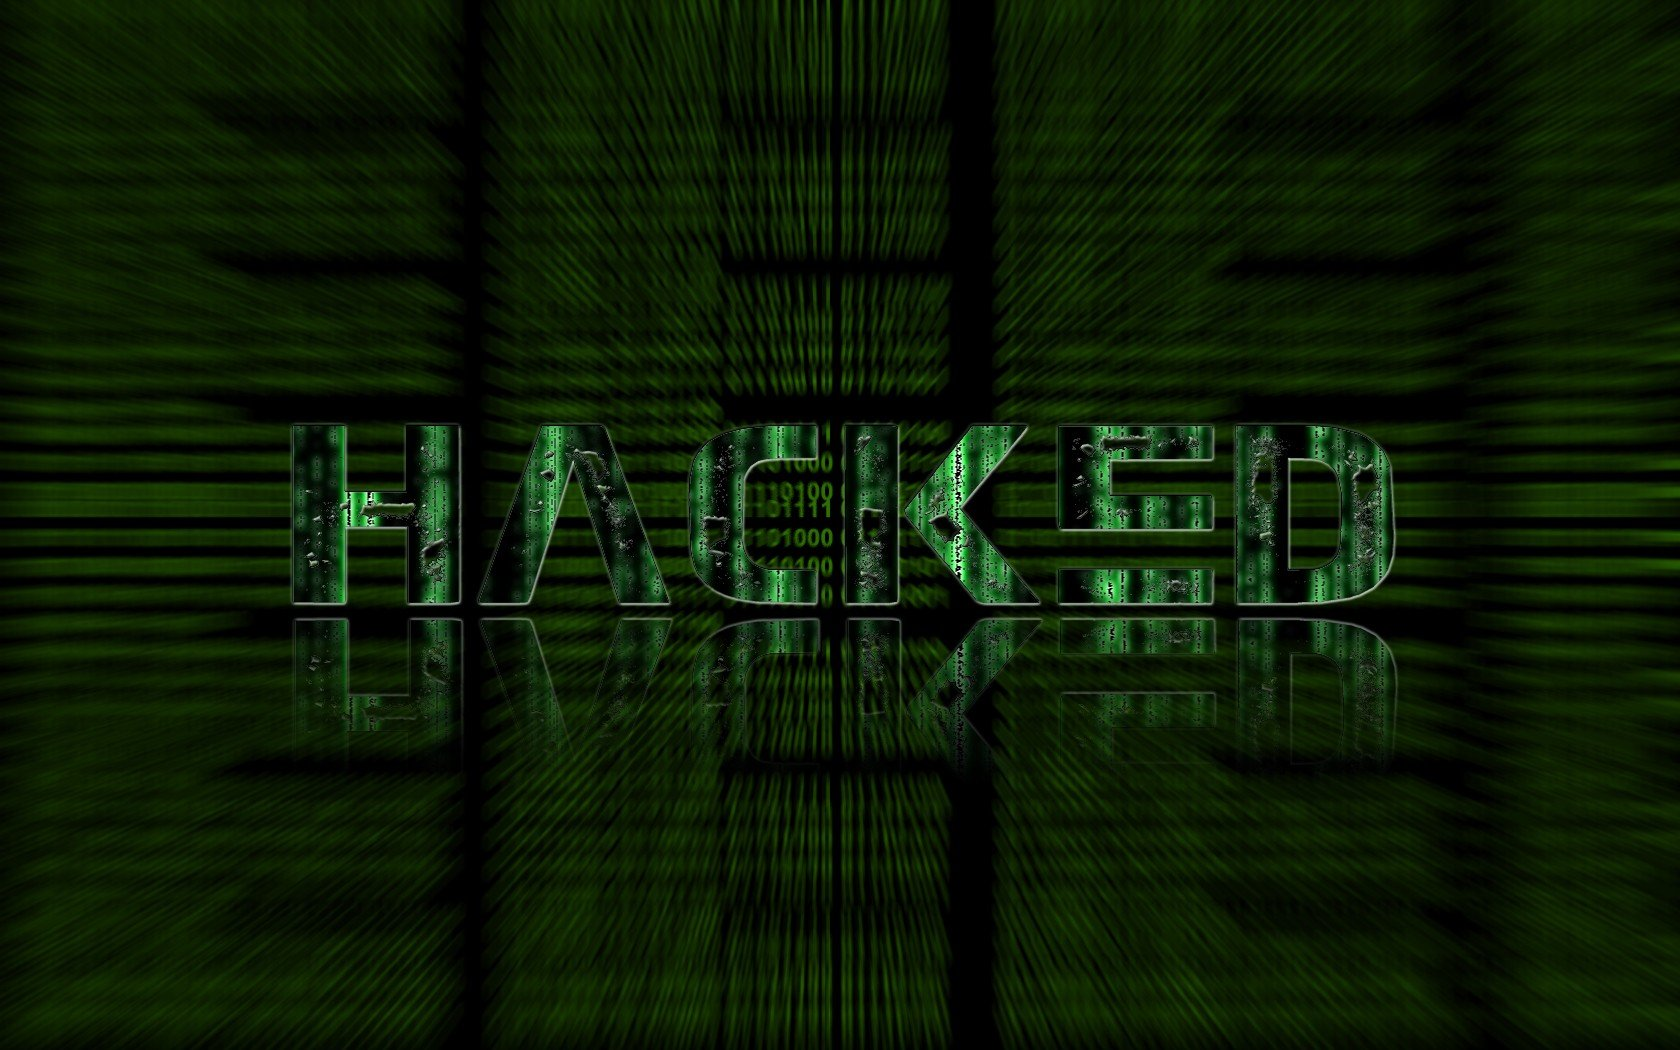 Hacking hackers wallpaper 1680x1050 61903 WallpaperUP 1680x1050